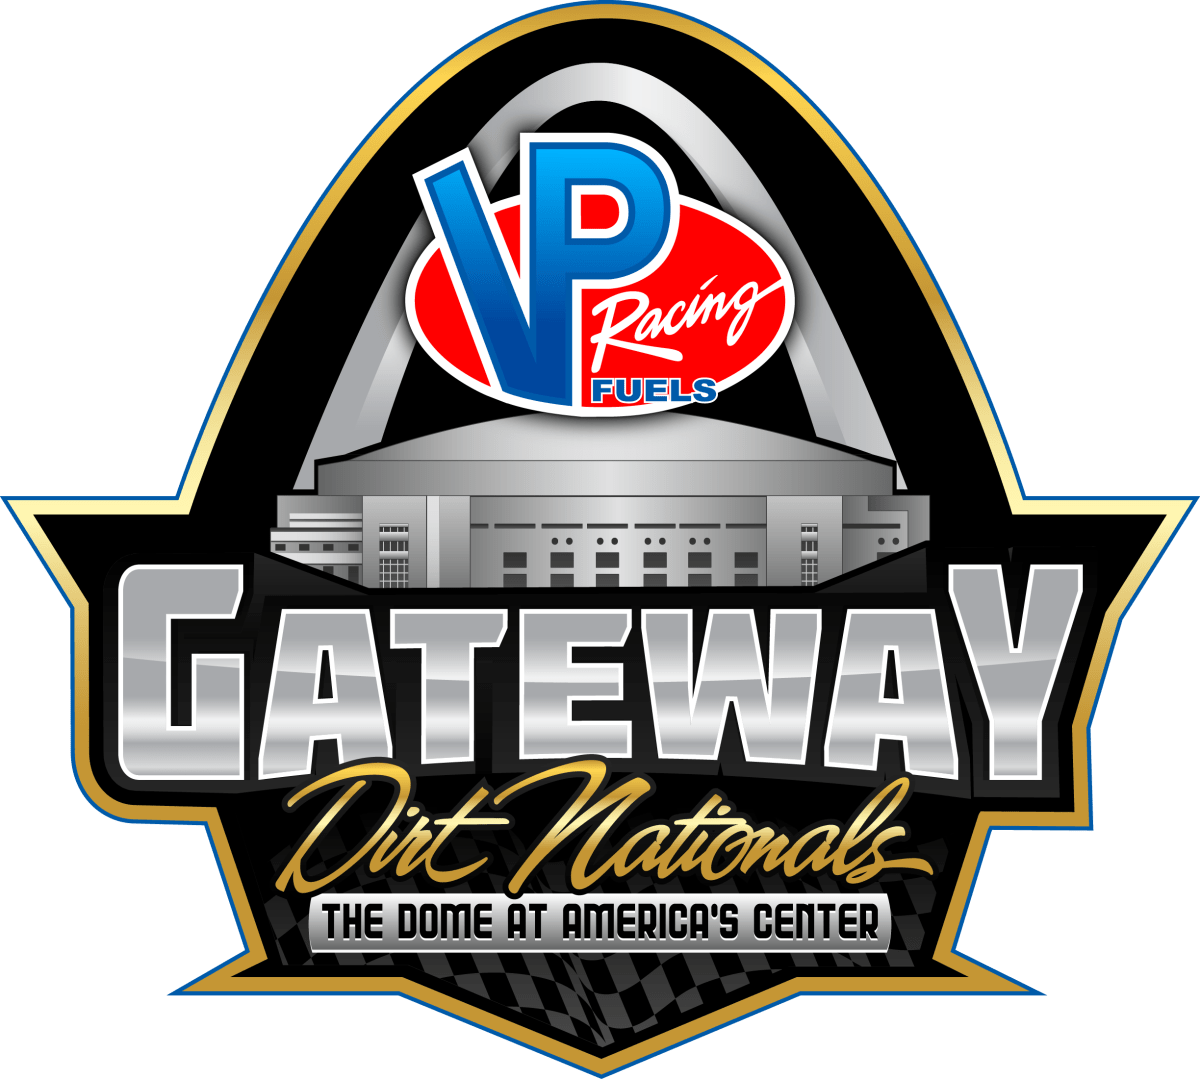 VP Gateway Dirt Nationals Entry List for all 3 divisions!